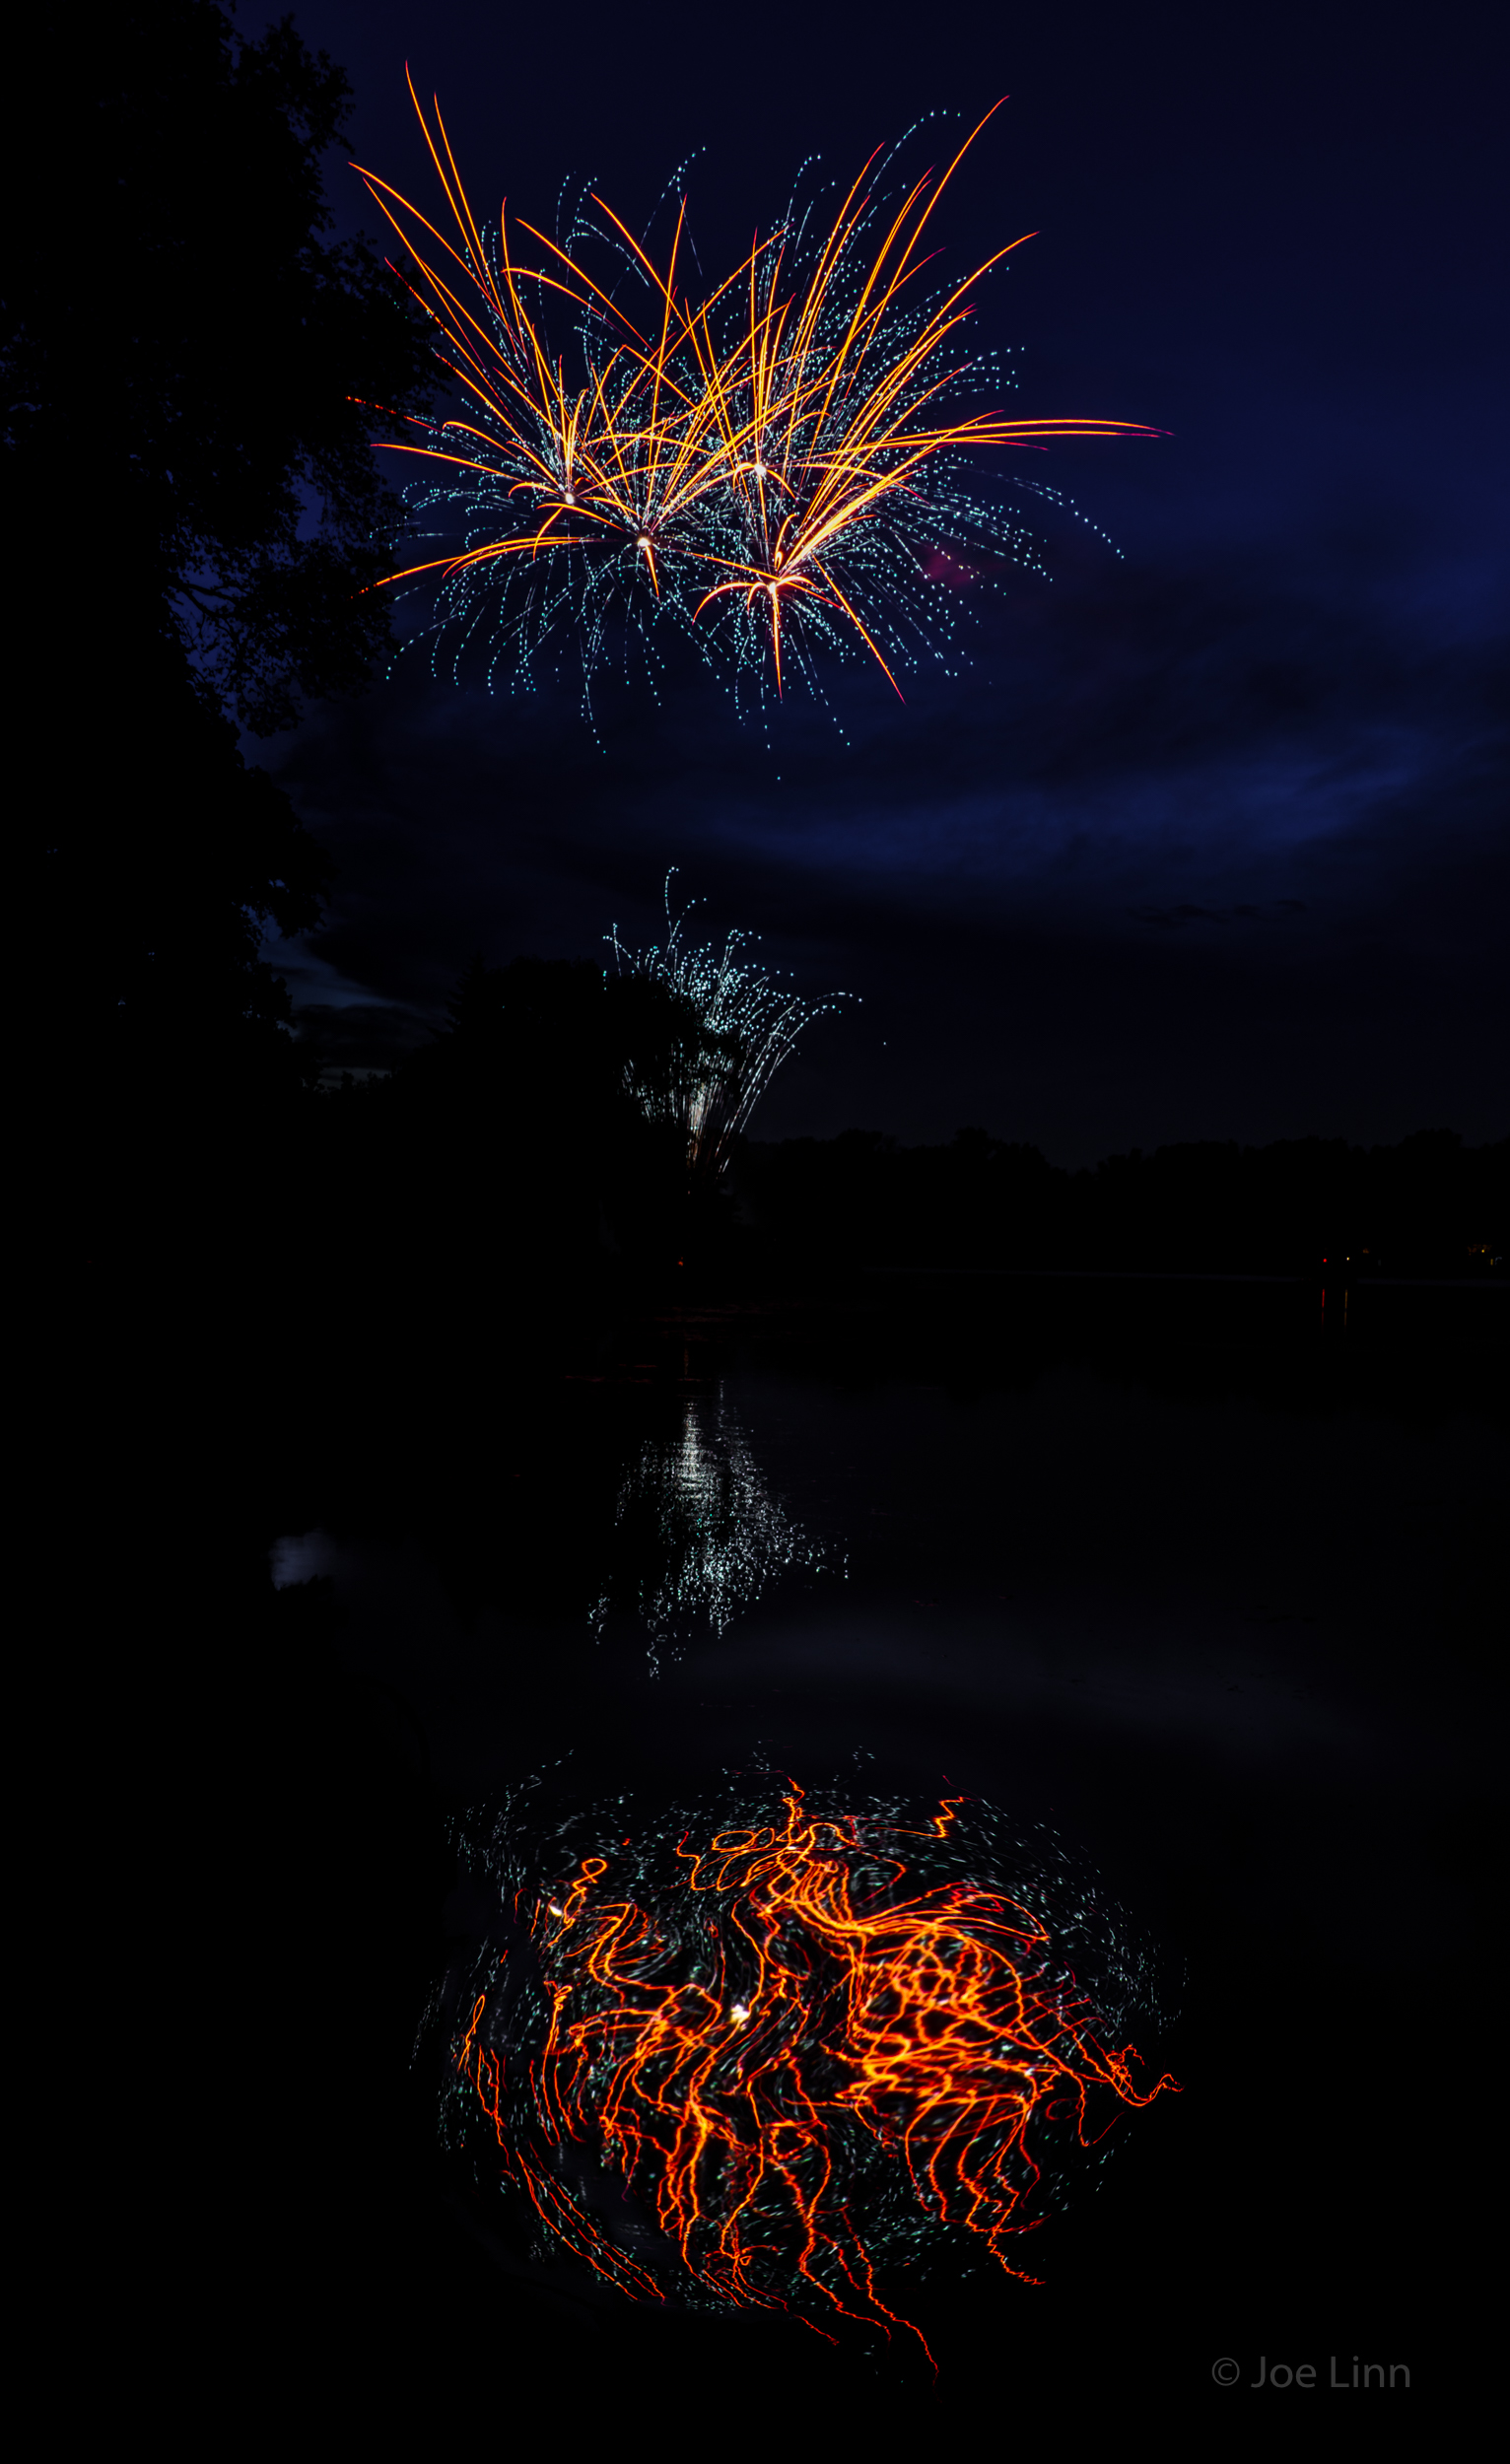 Fireworks reflections